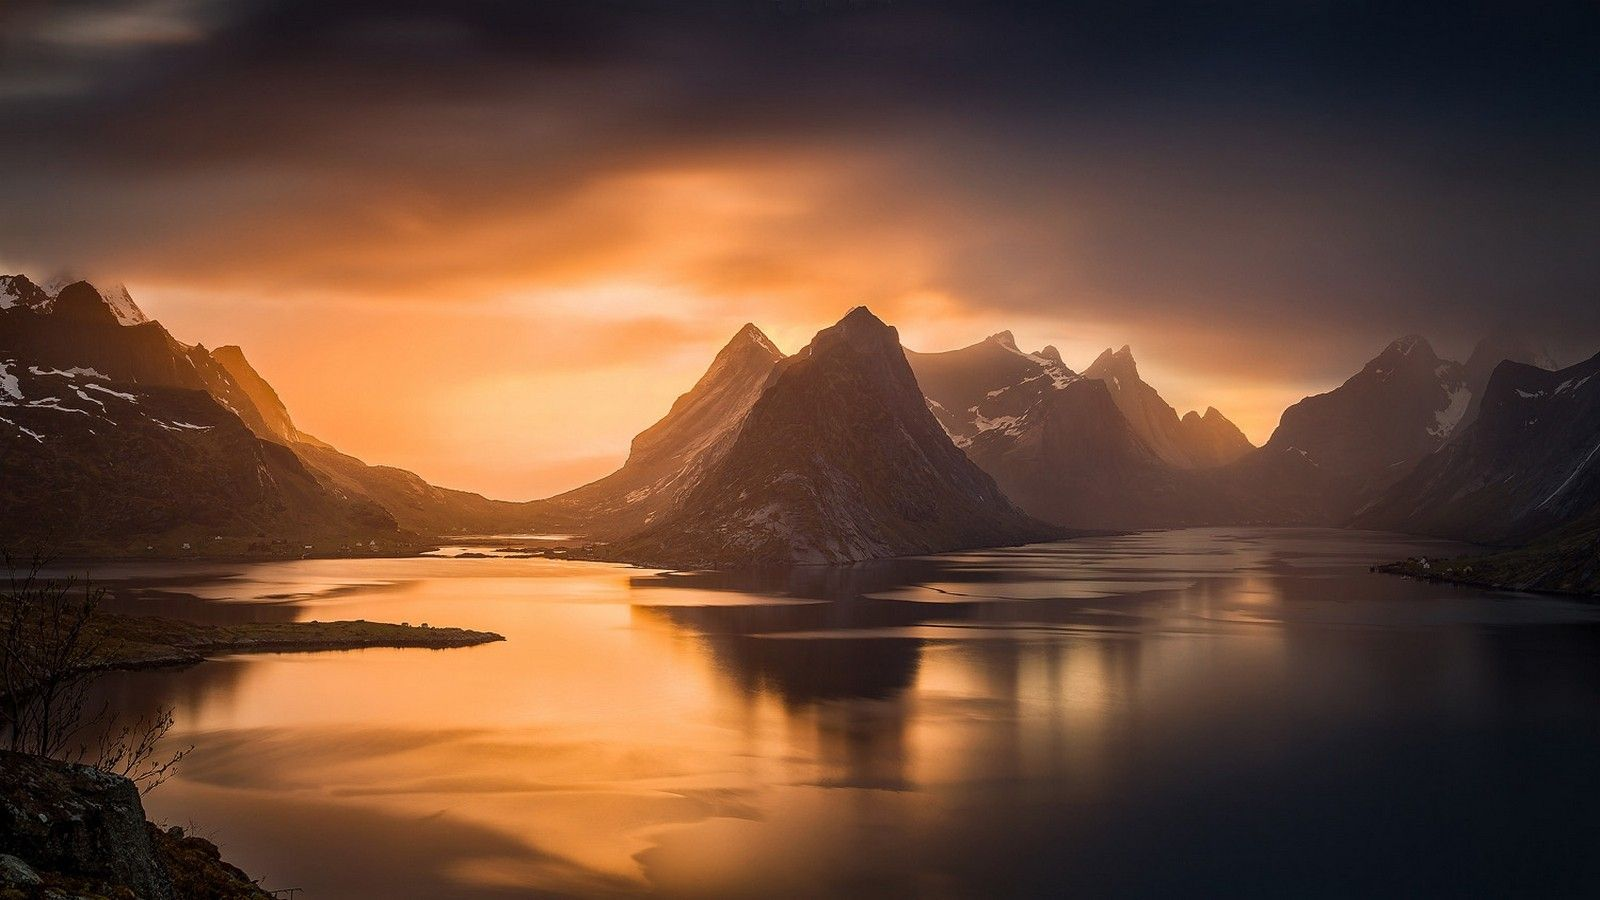 General 1600x900 Nature Landscape Fjord Sunset Mountain